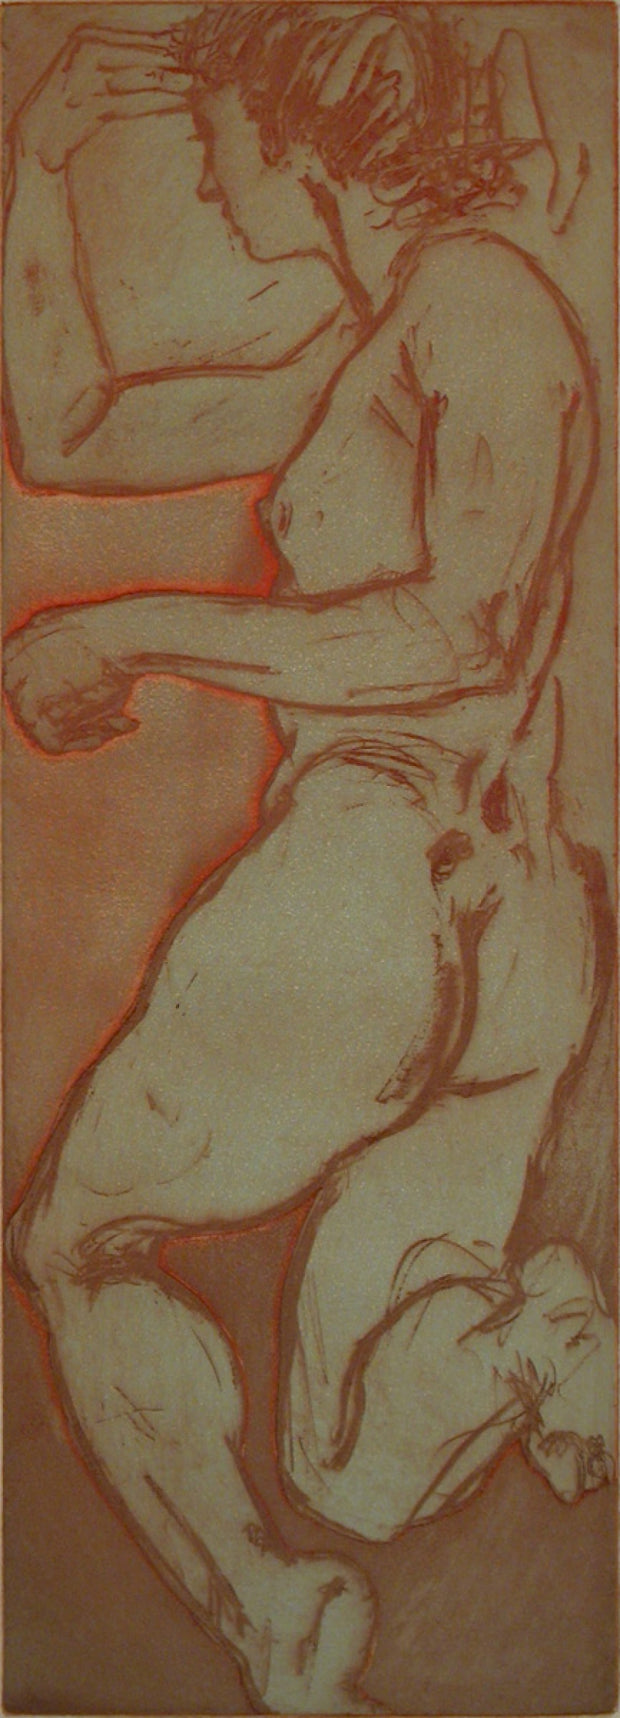 Floating World Suite: Figure 13 by Mary Farrell - Davidson Galleries